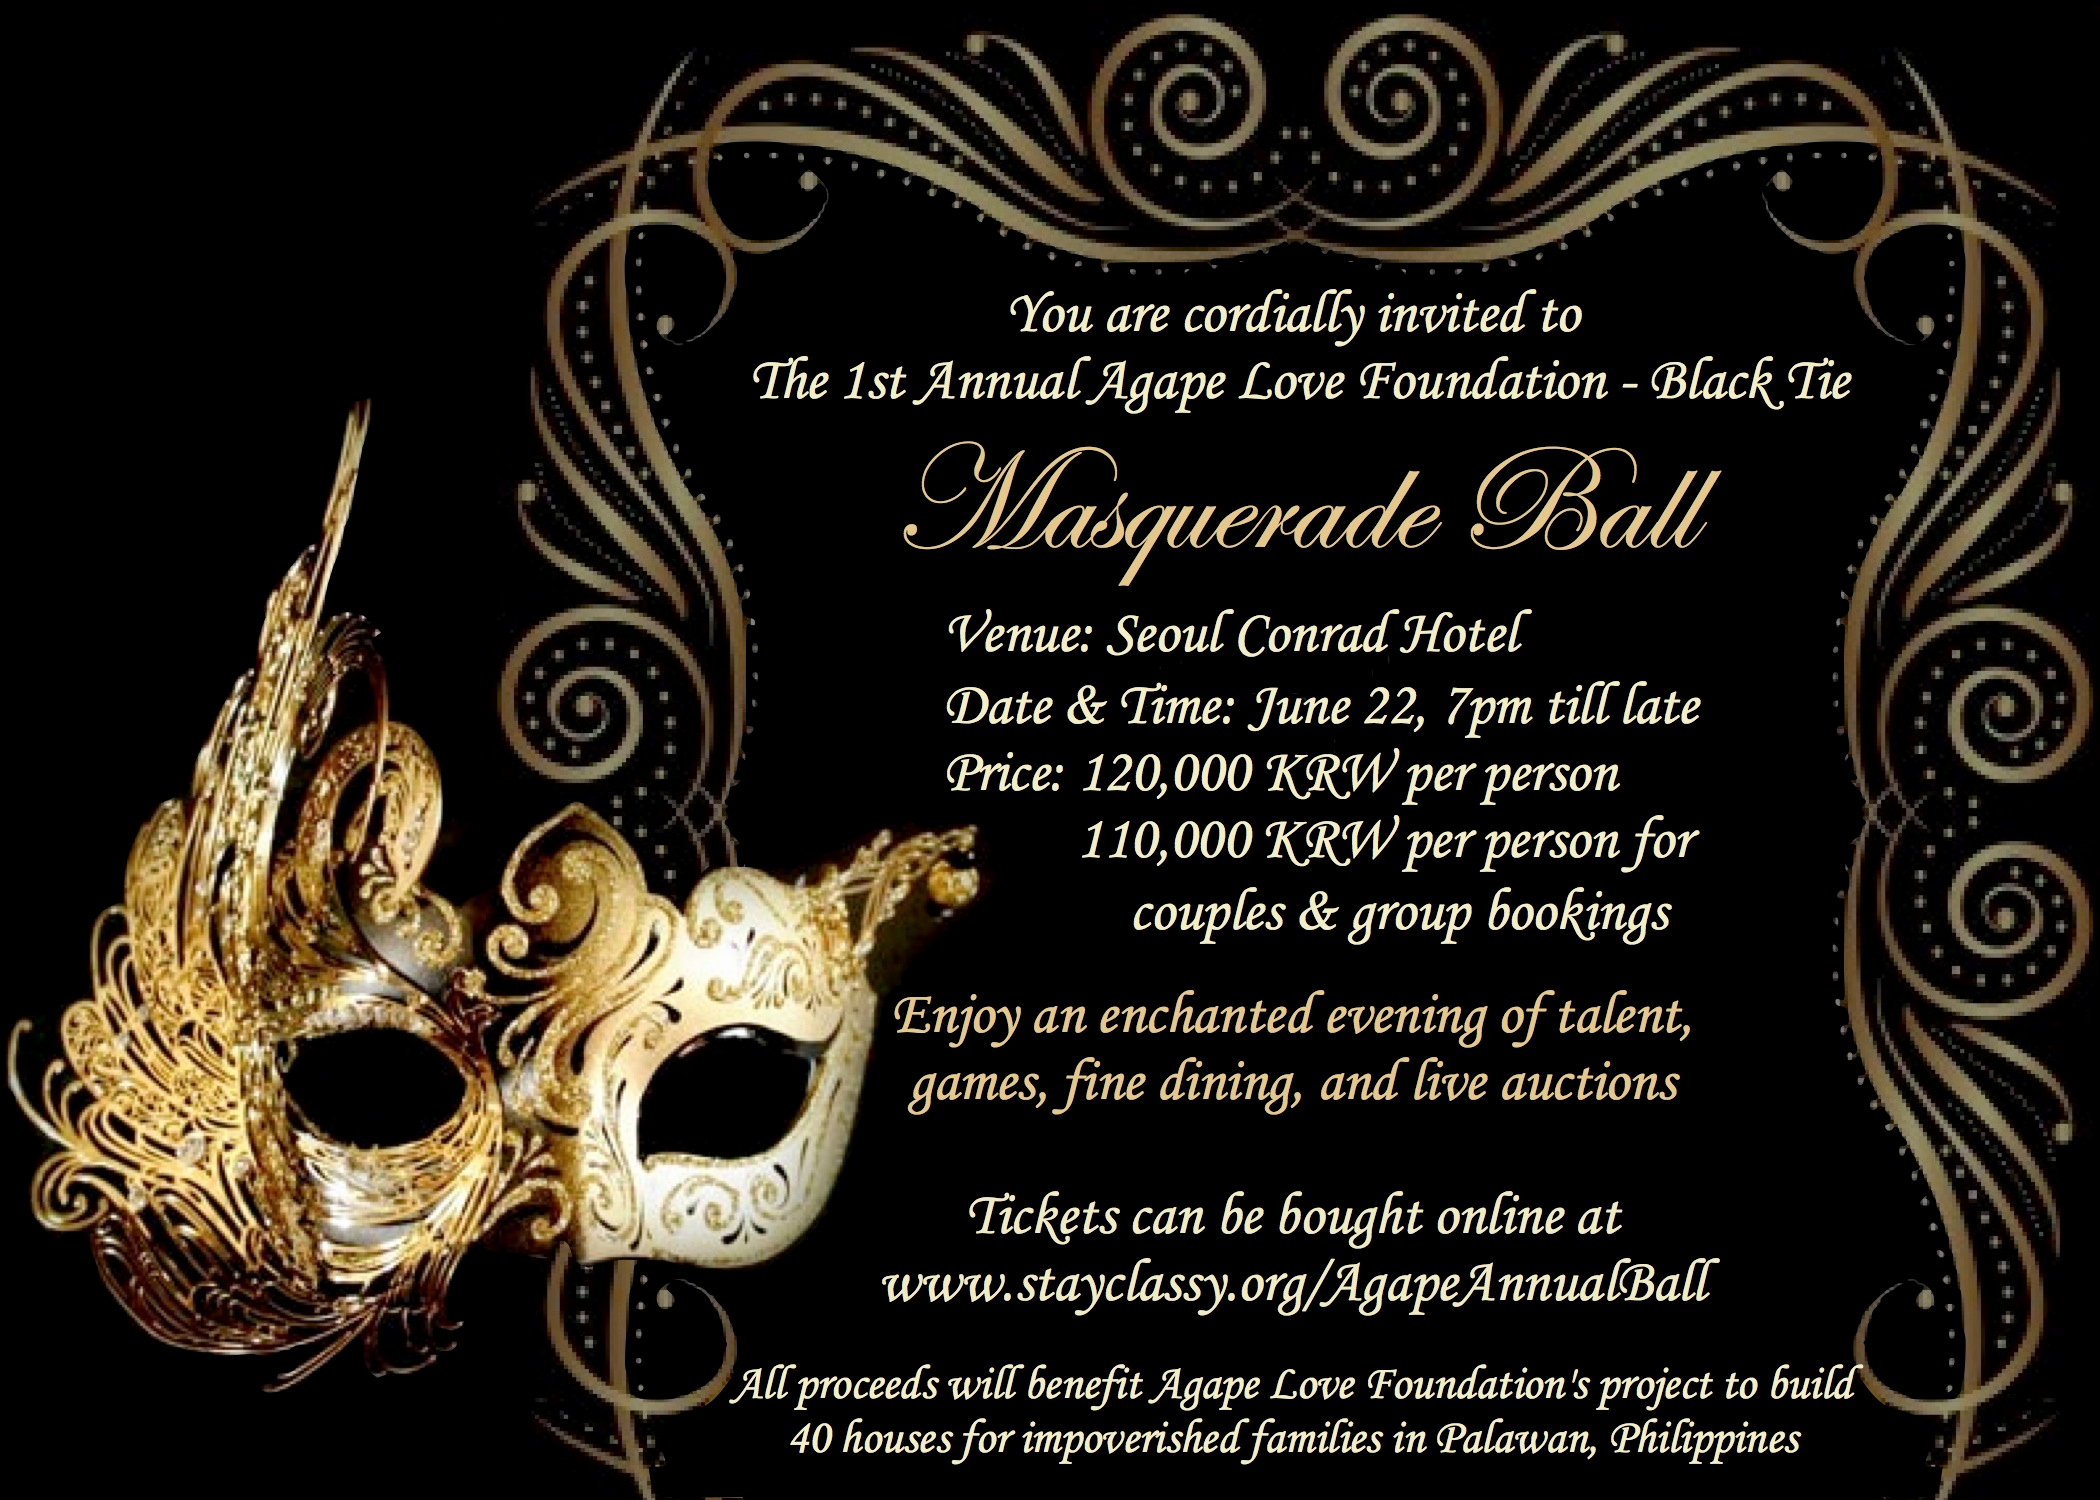 Masquerade Ball Invitation Wording Awesome Birthday Party Invitations Free Templates